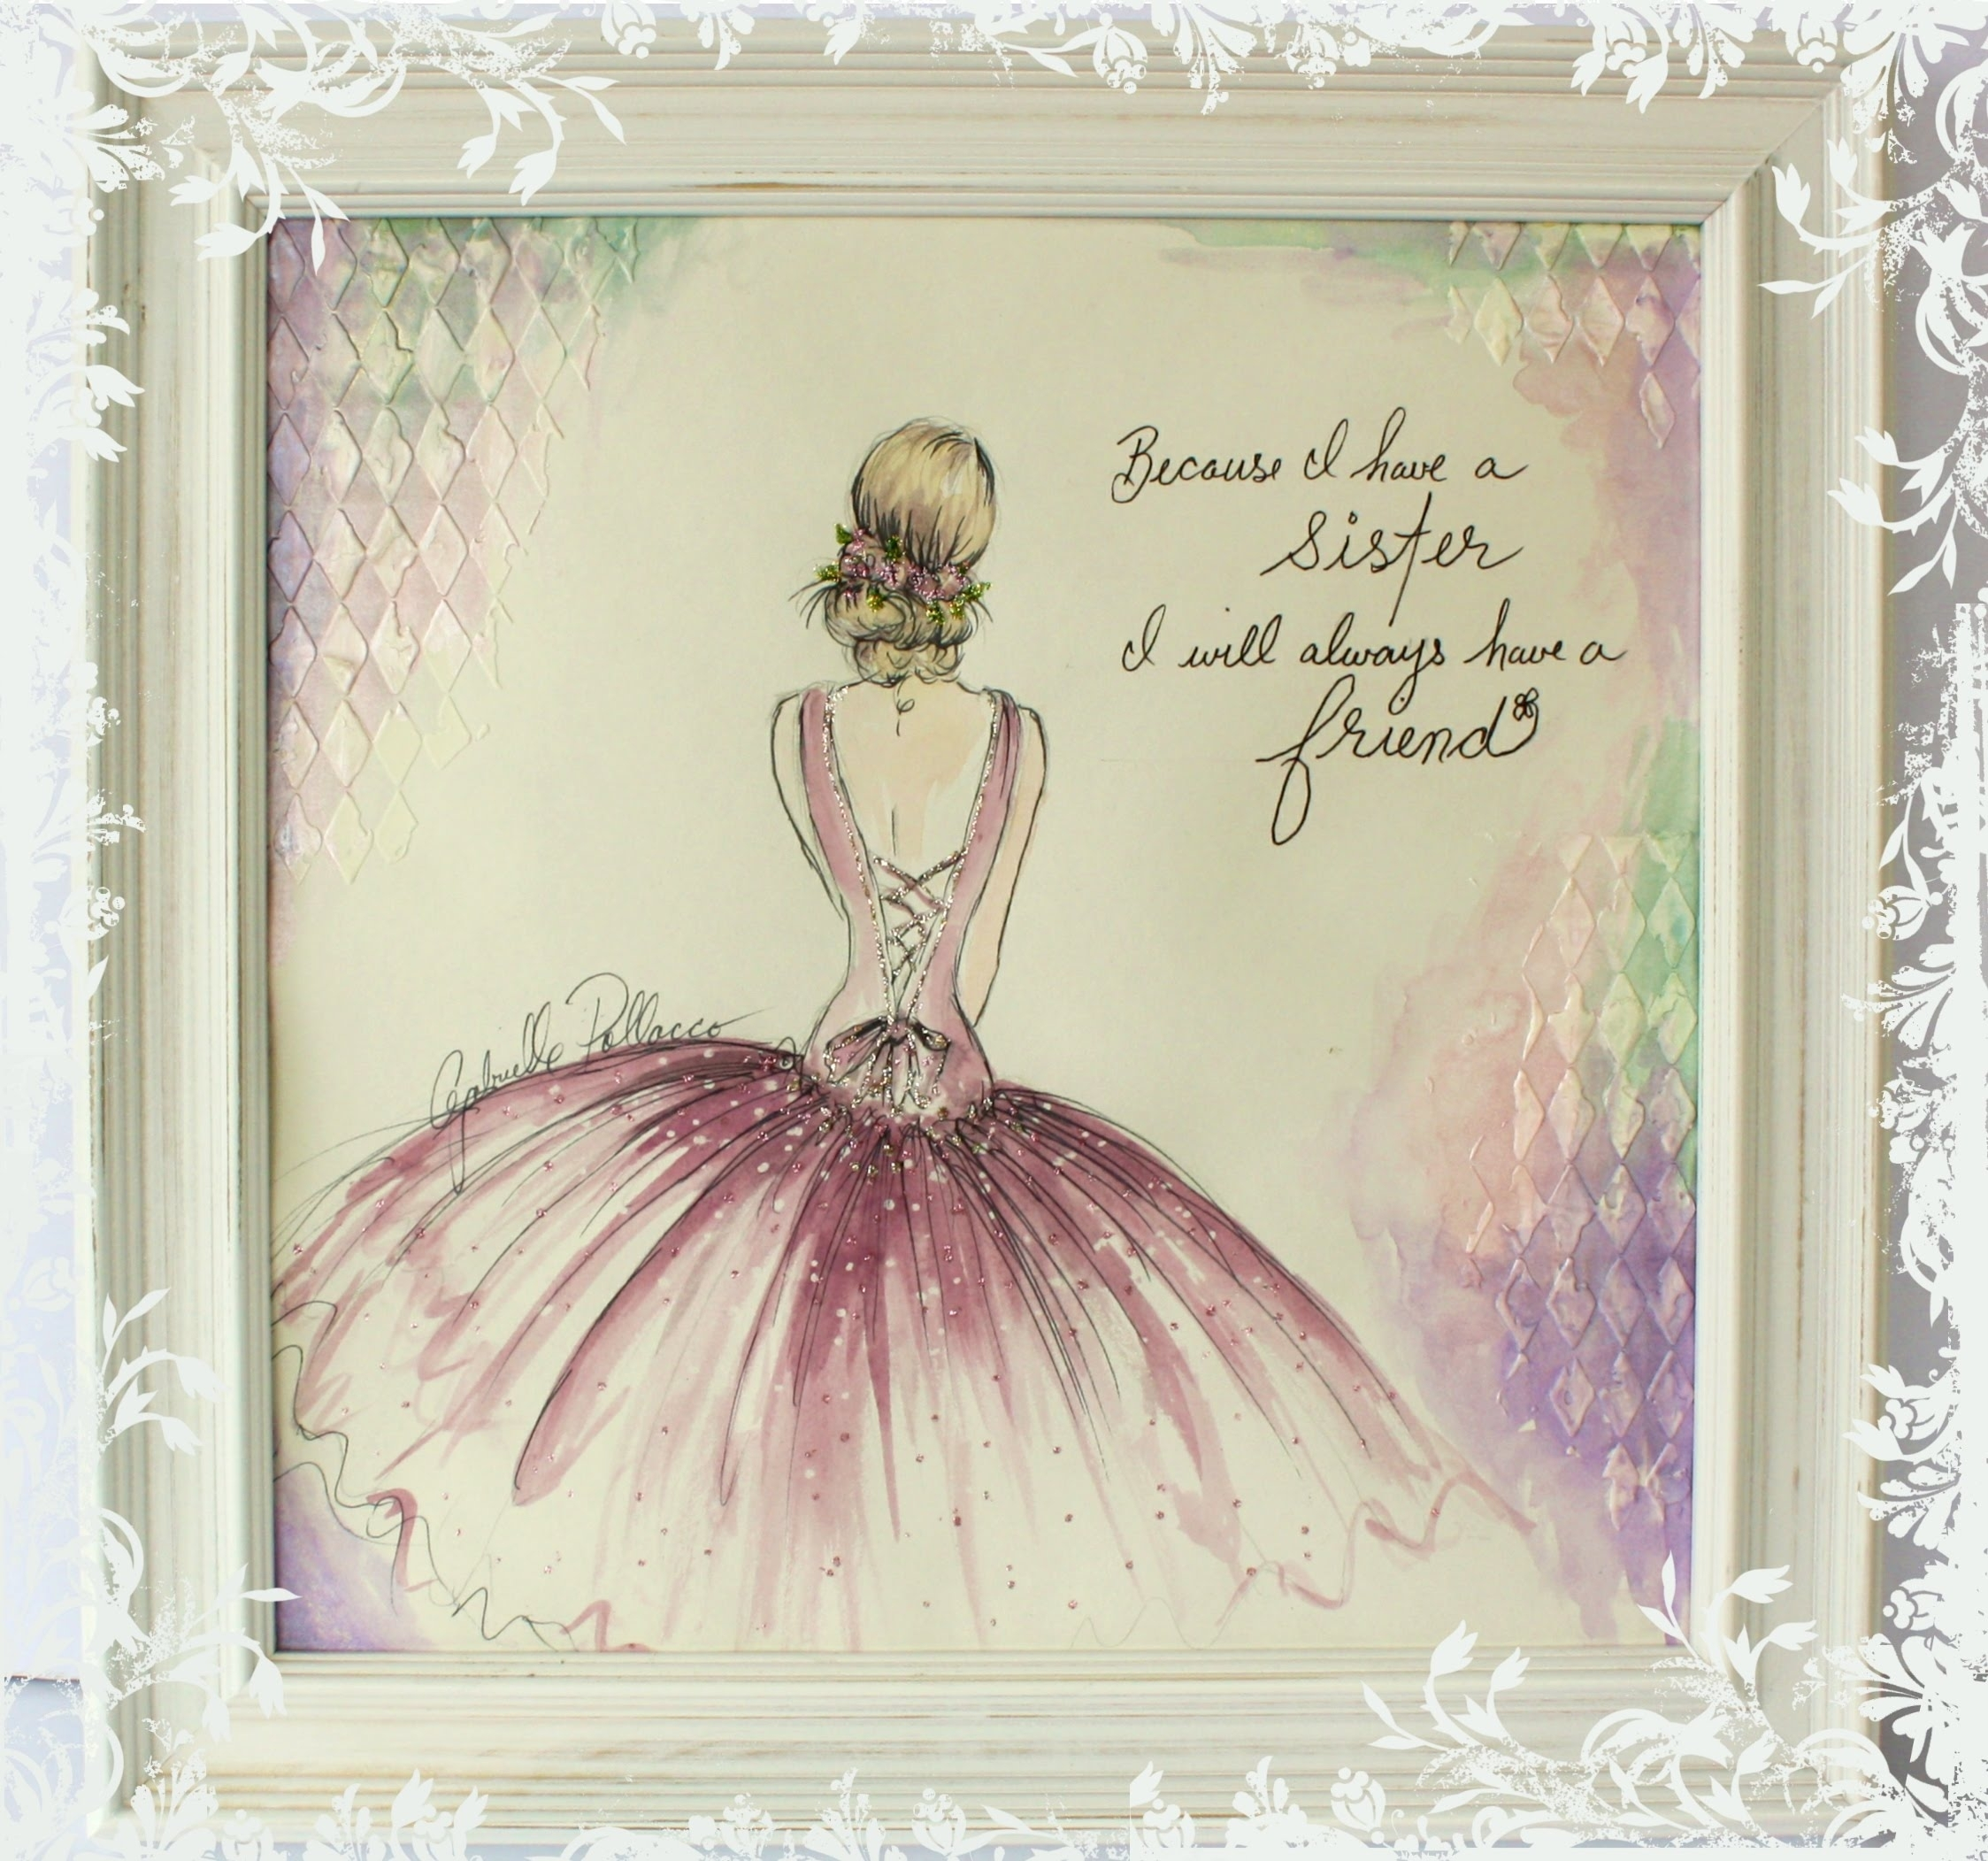 Shabby Chic Wall Art - Youtube with regard to Shabby Chic Wall Art (Image 11 of 20)